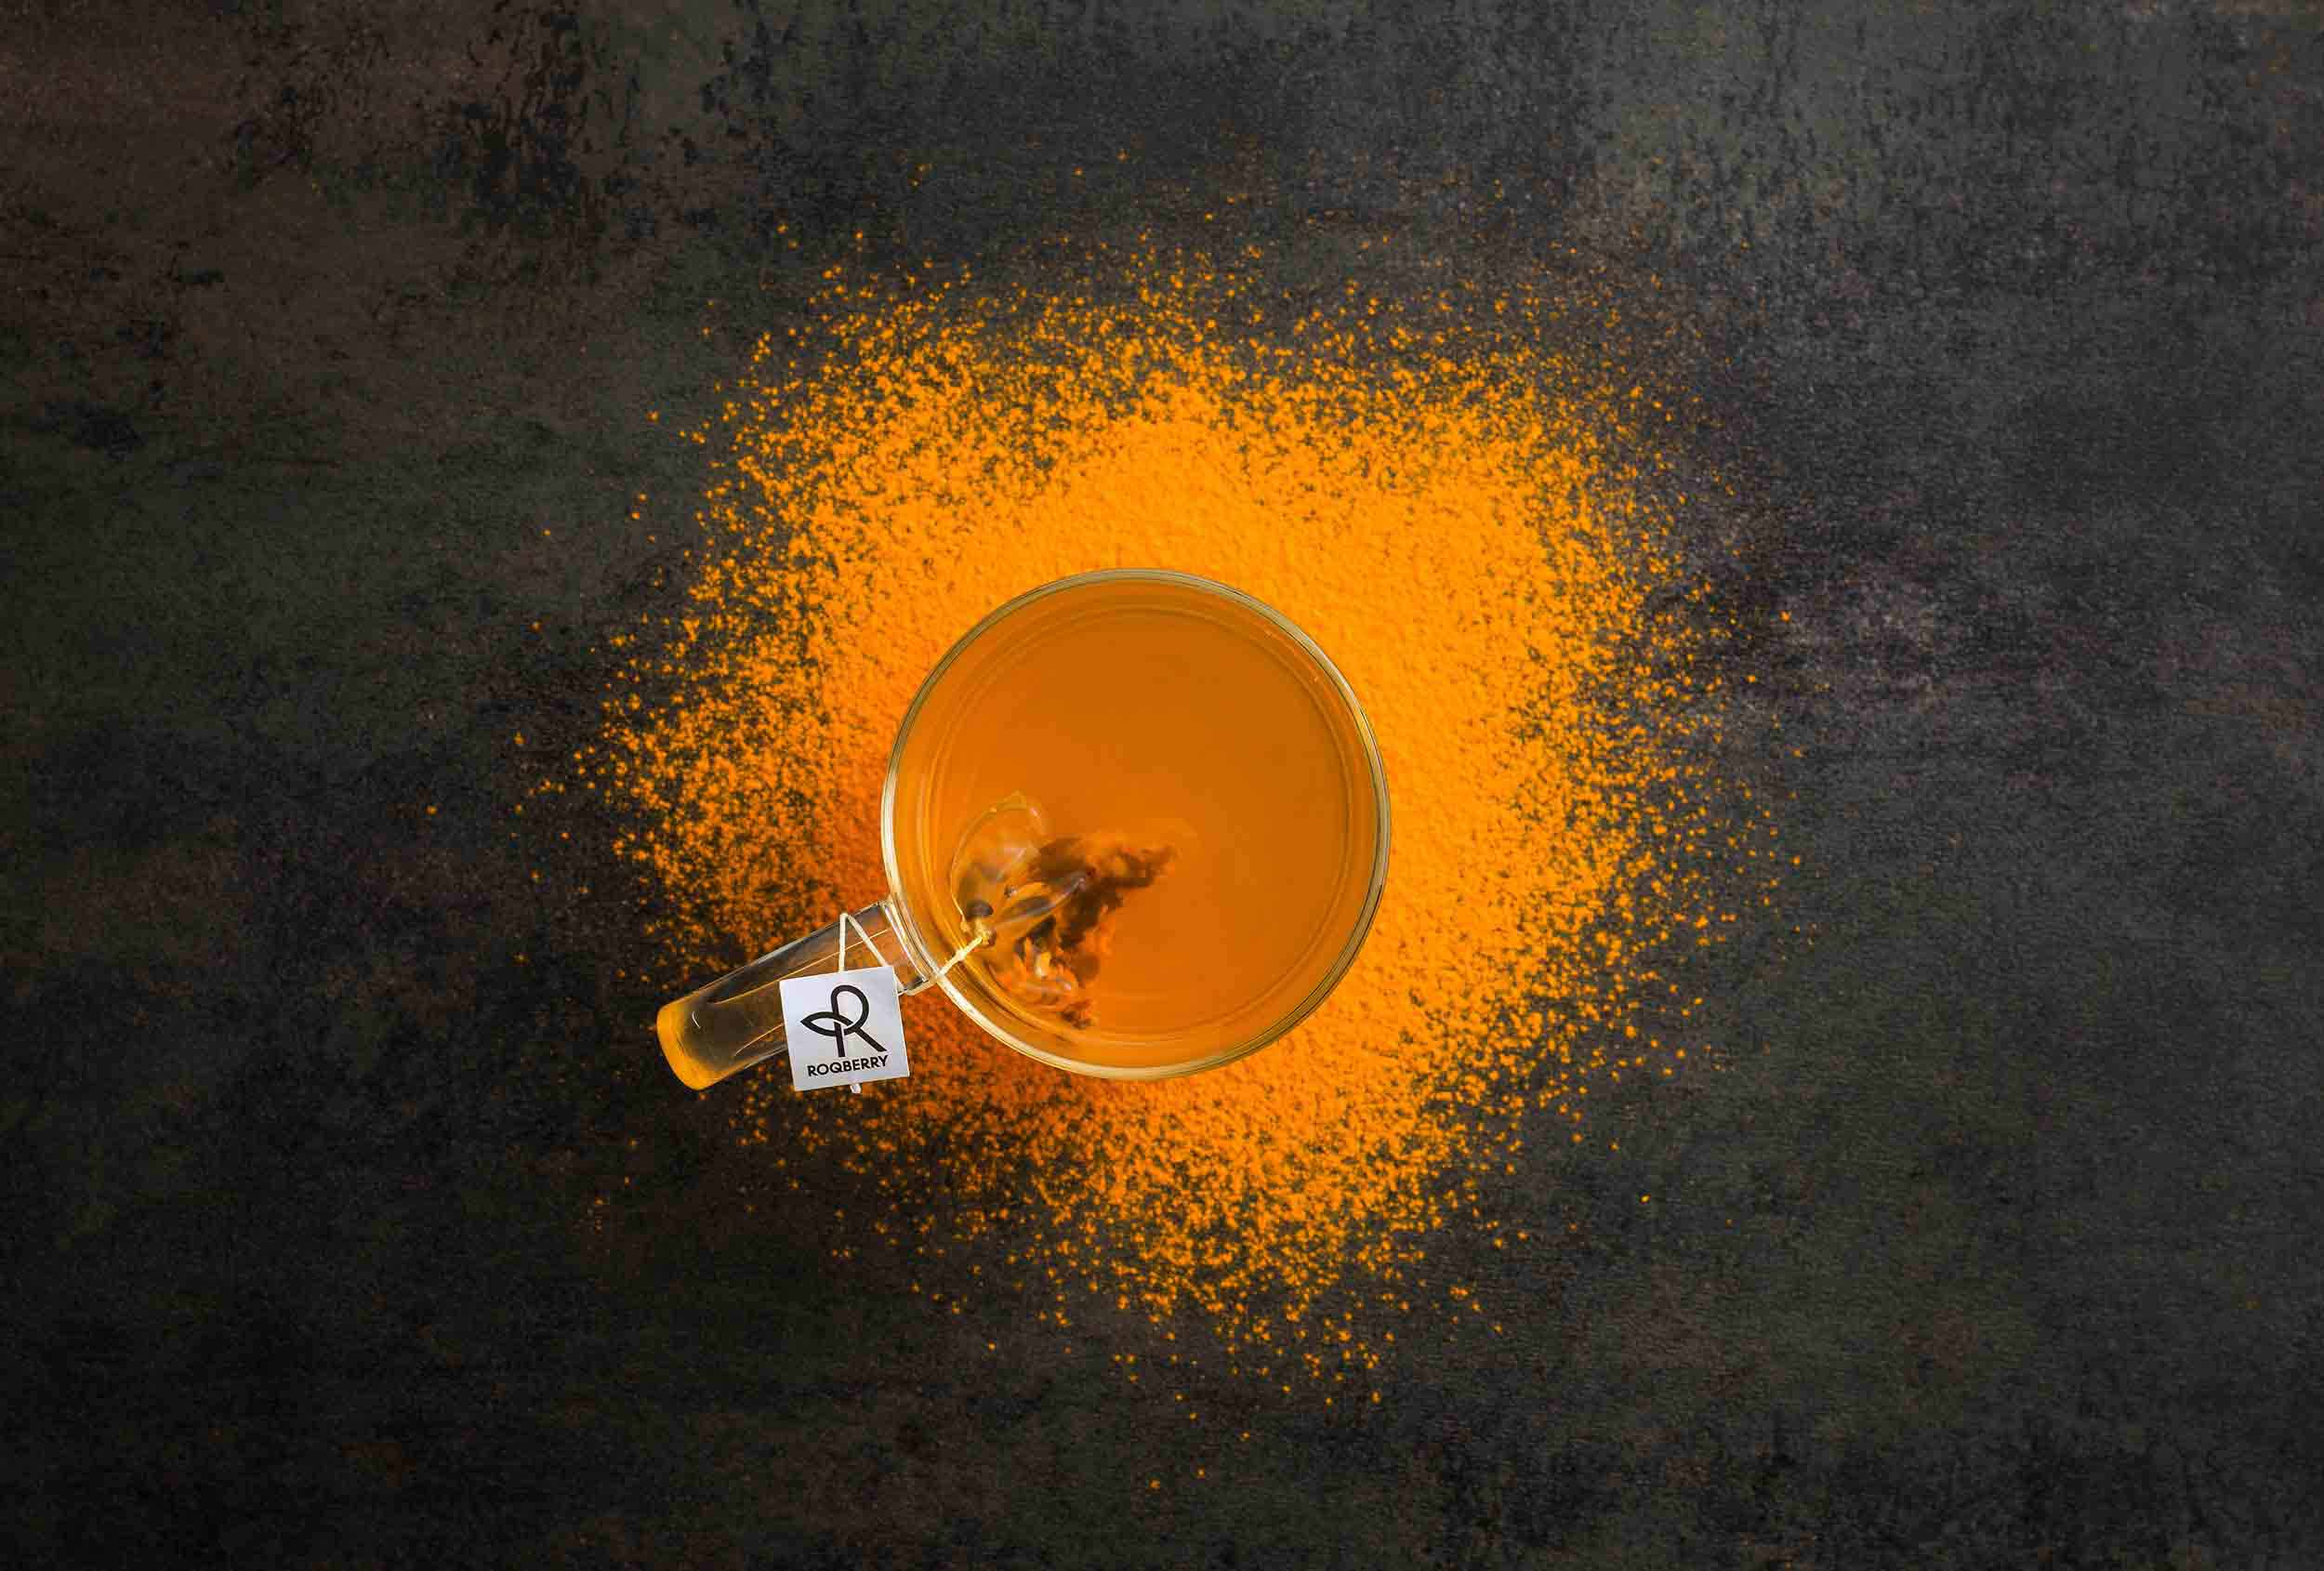 Roqberry Turmeric Chai. Art directed by Distil Studio. Photography by Michael Feather.